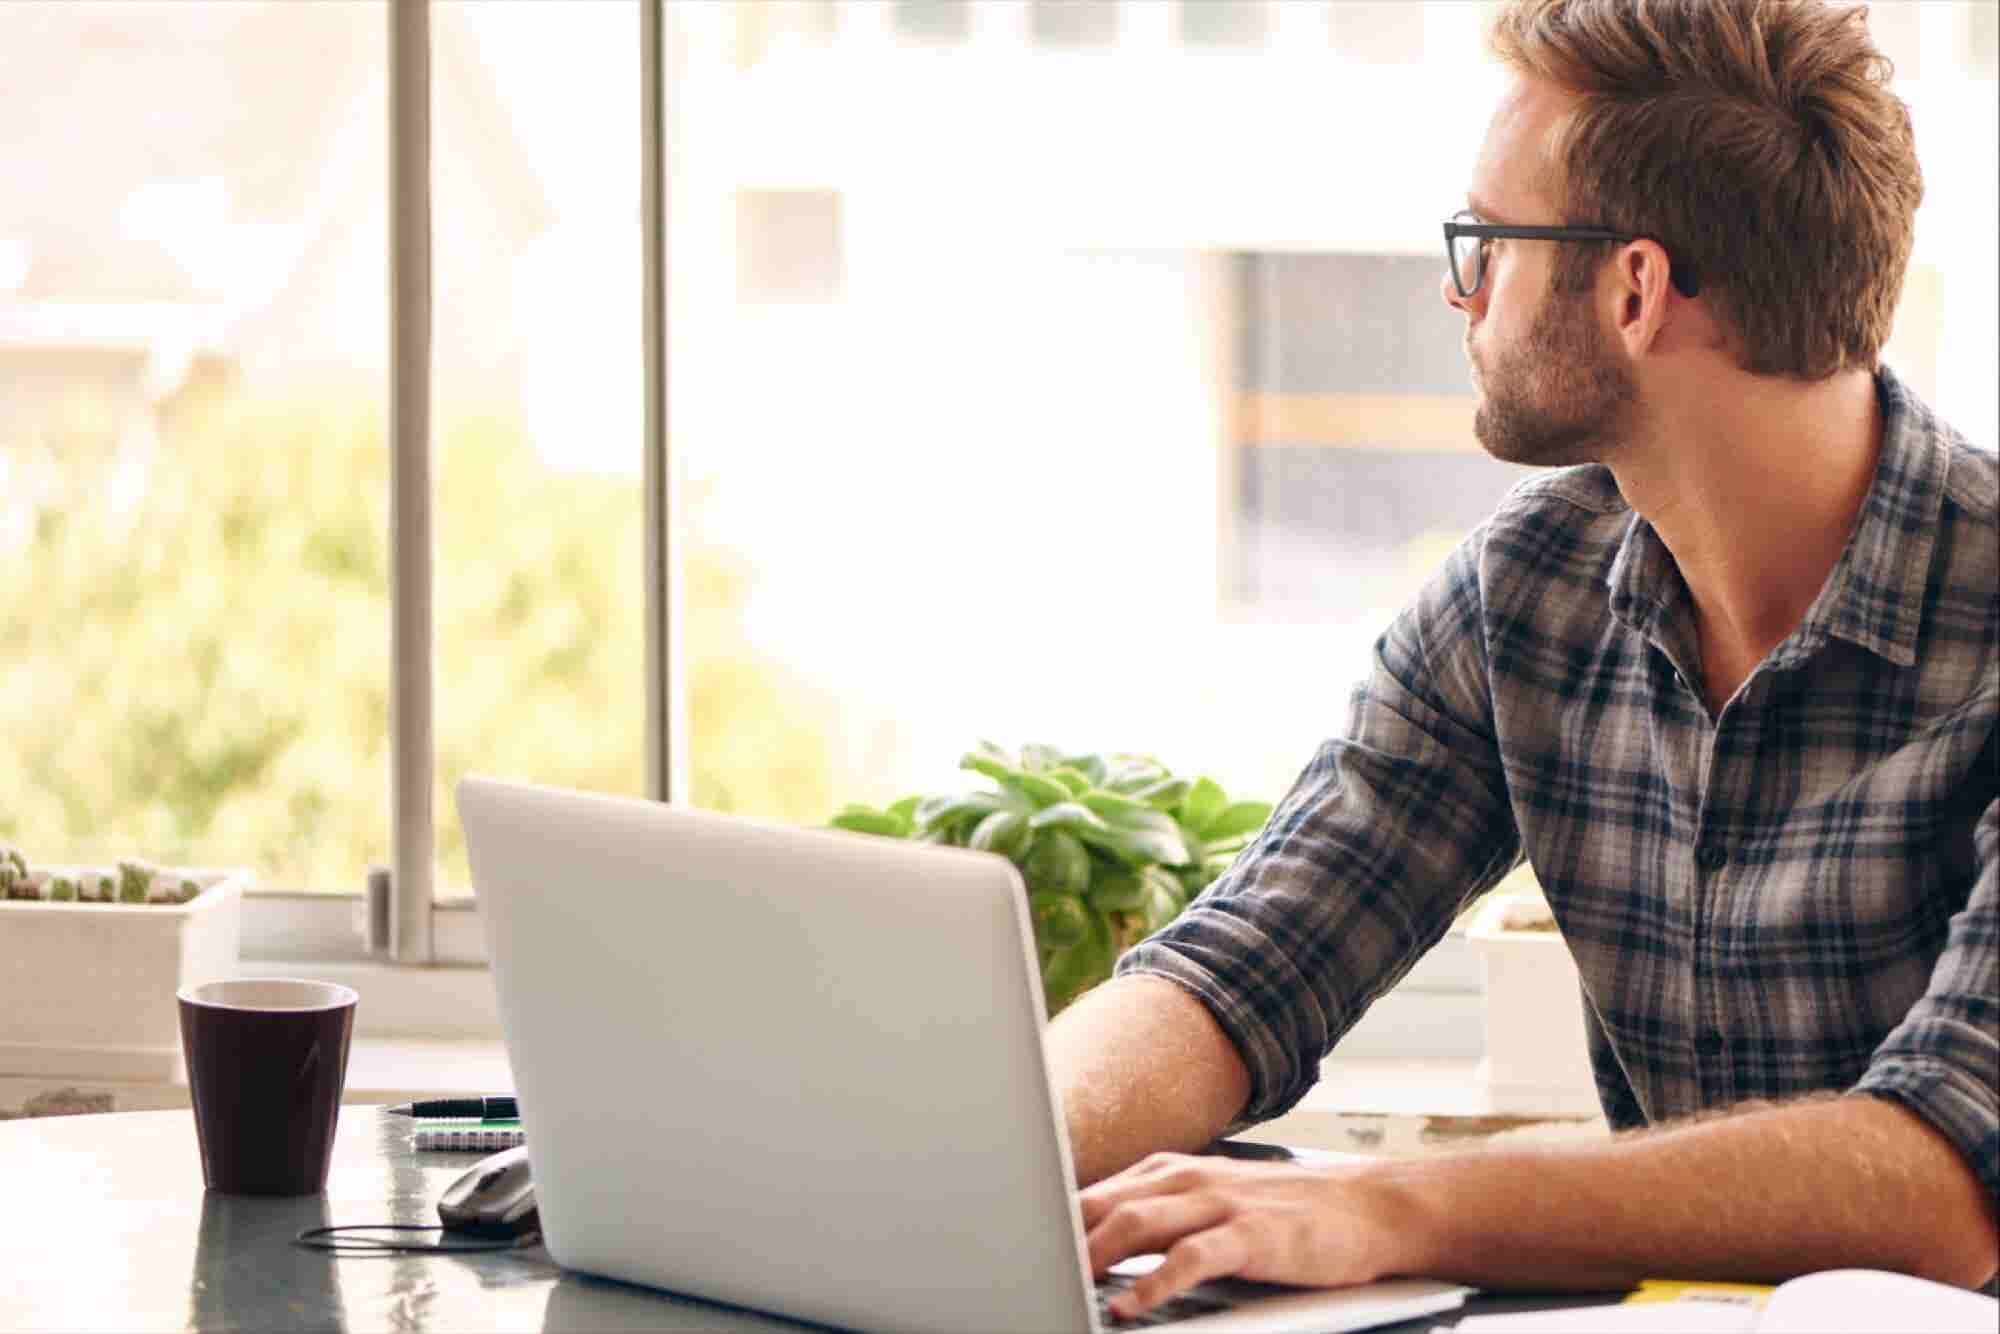 20 Reasons to Let Your Employees Work From Home